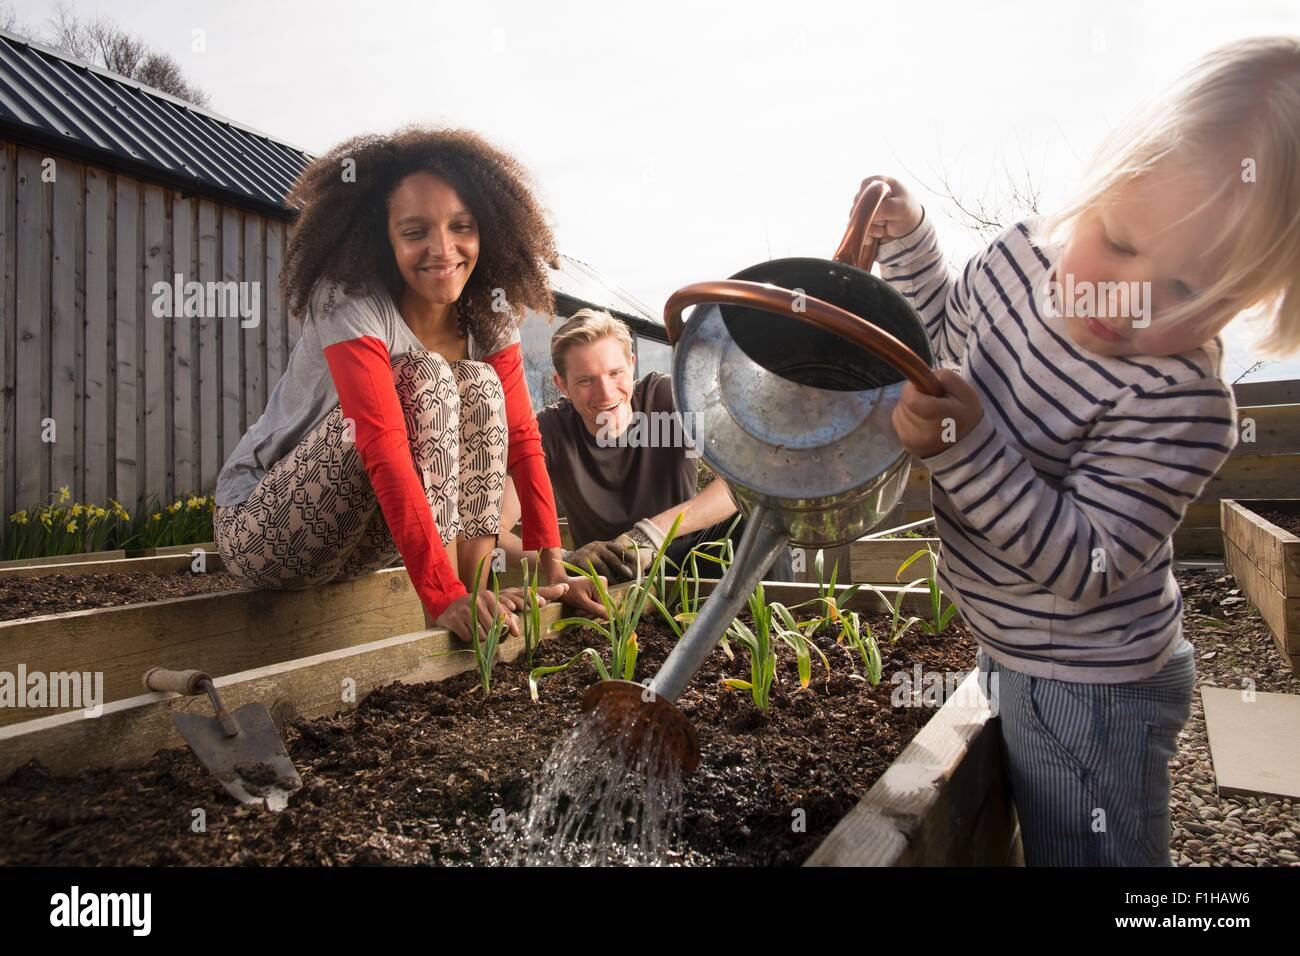 Fils d'arroser les plantes, parents Photo Stock